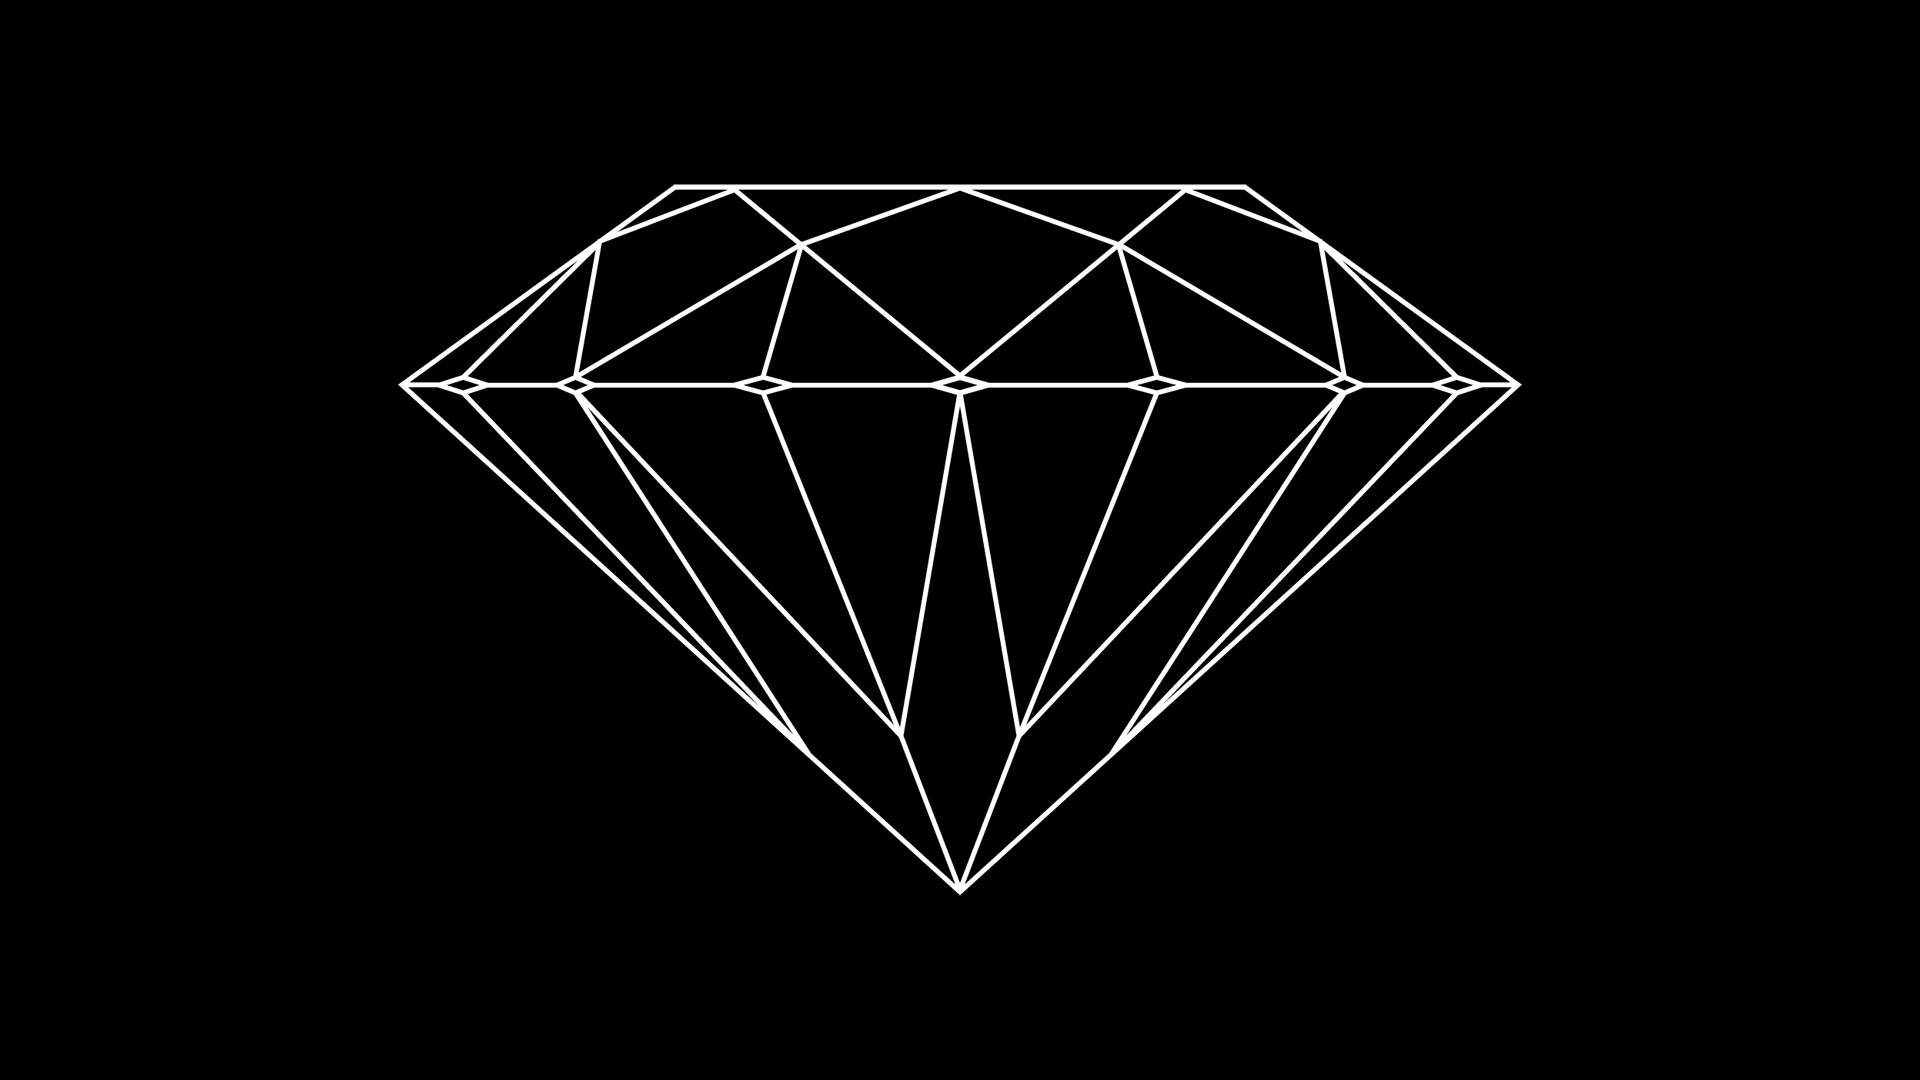 1920x1080 Diamond Wallpaper or Background | HD Wallpapers | Pinterest | Diamond  wallpaper and Wallpaper